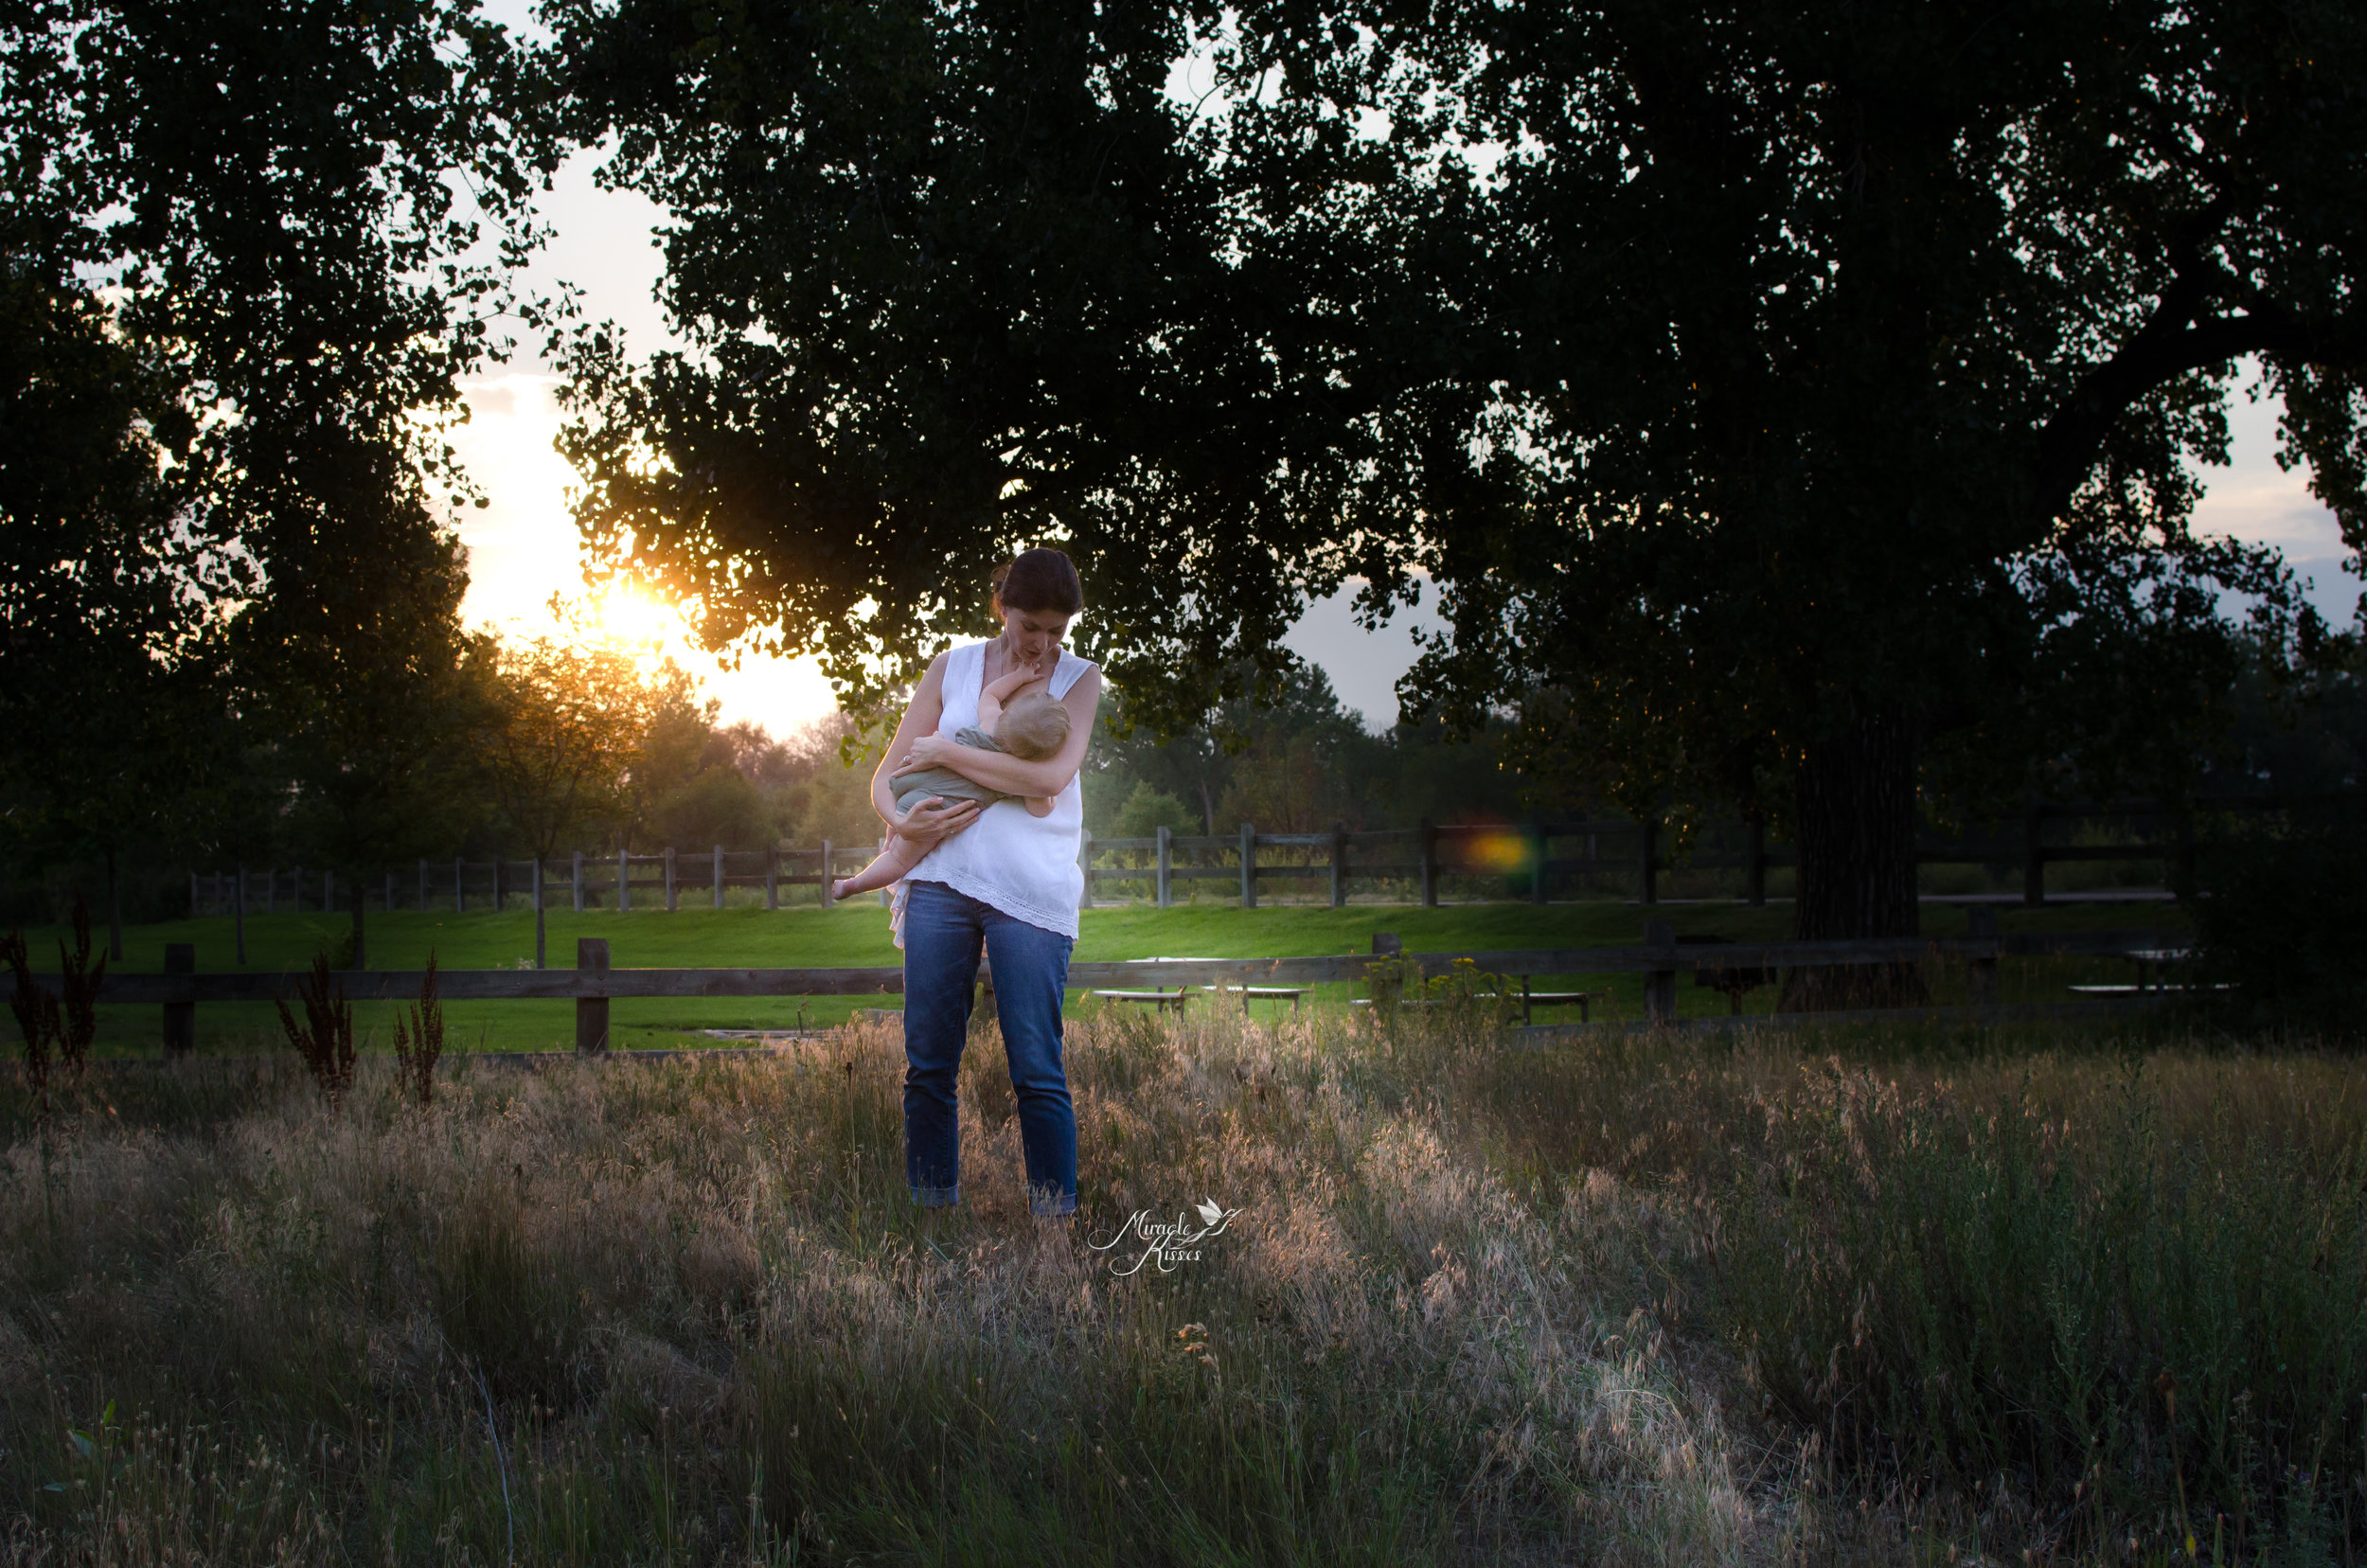 nursing in the park, colorado breastfeeding, mommy and me photo